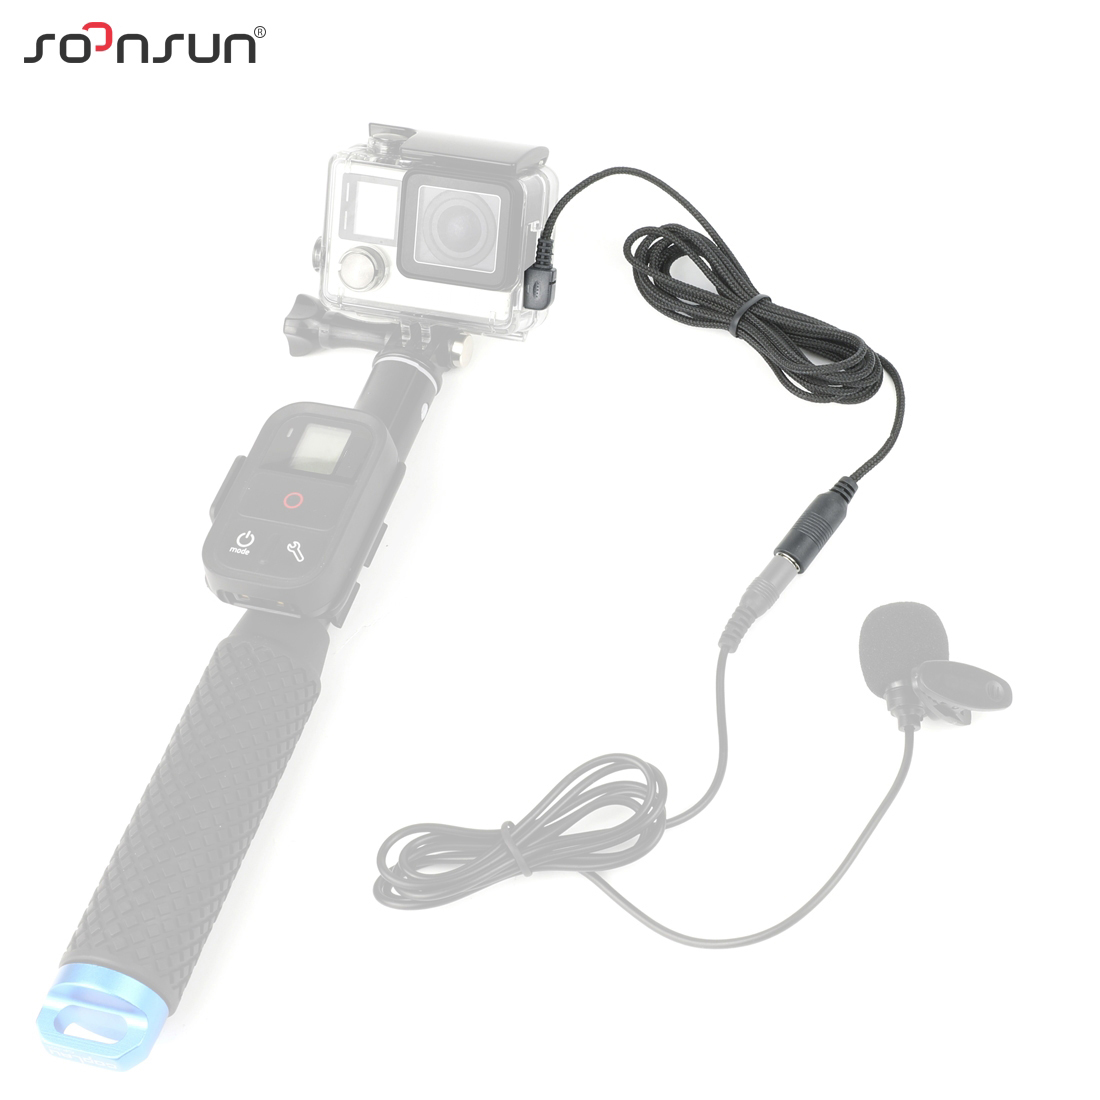 GoPro Microphone Adapter GPO-2004g